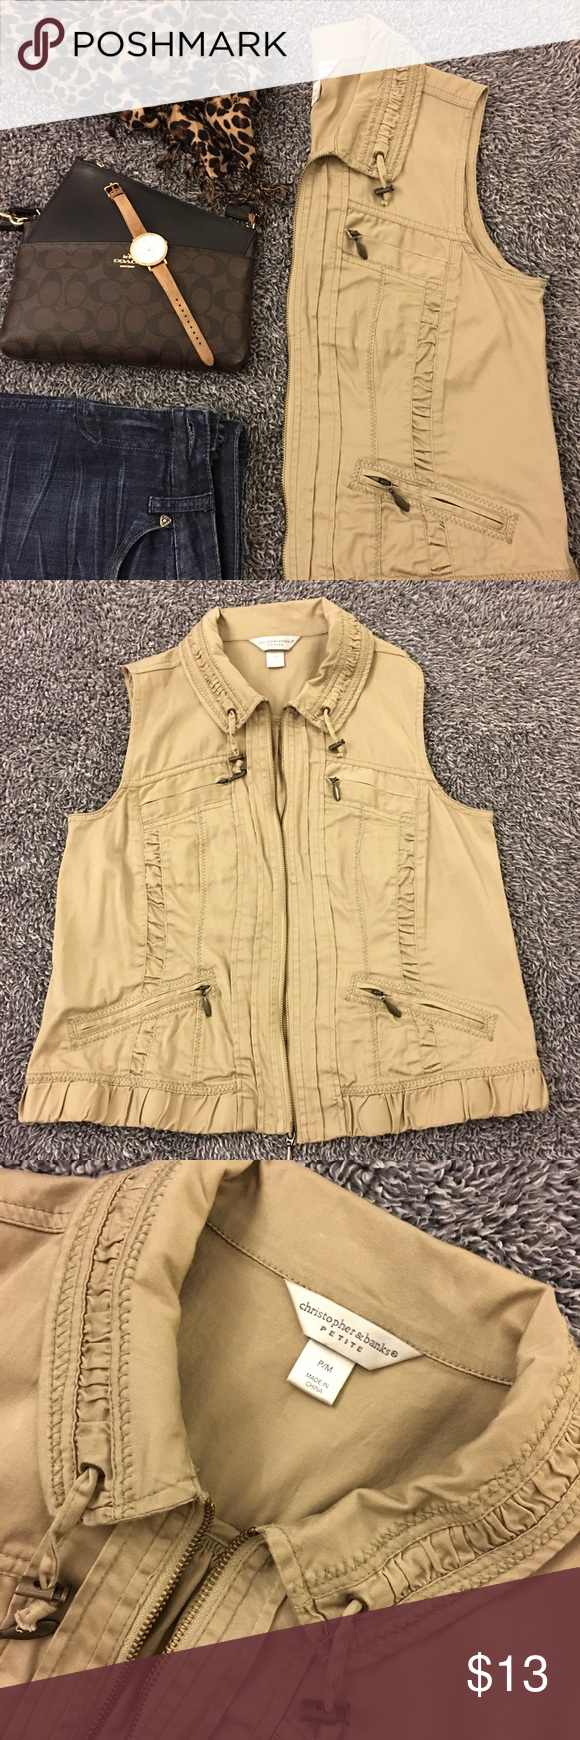 Tan utility vest hardly worn! I hardly wore this so its